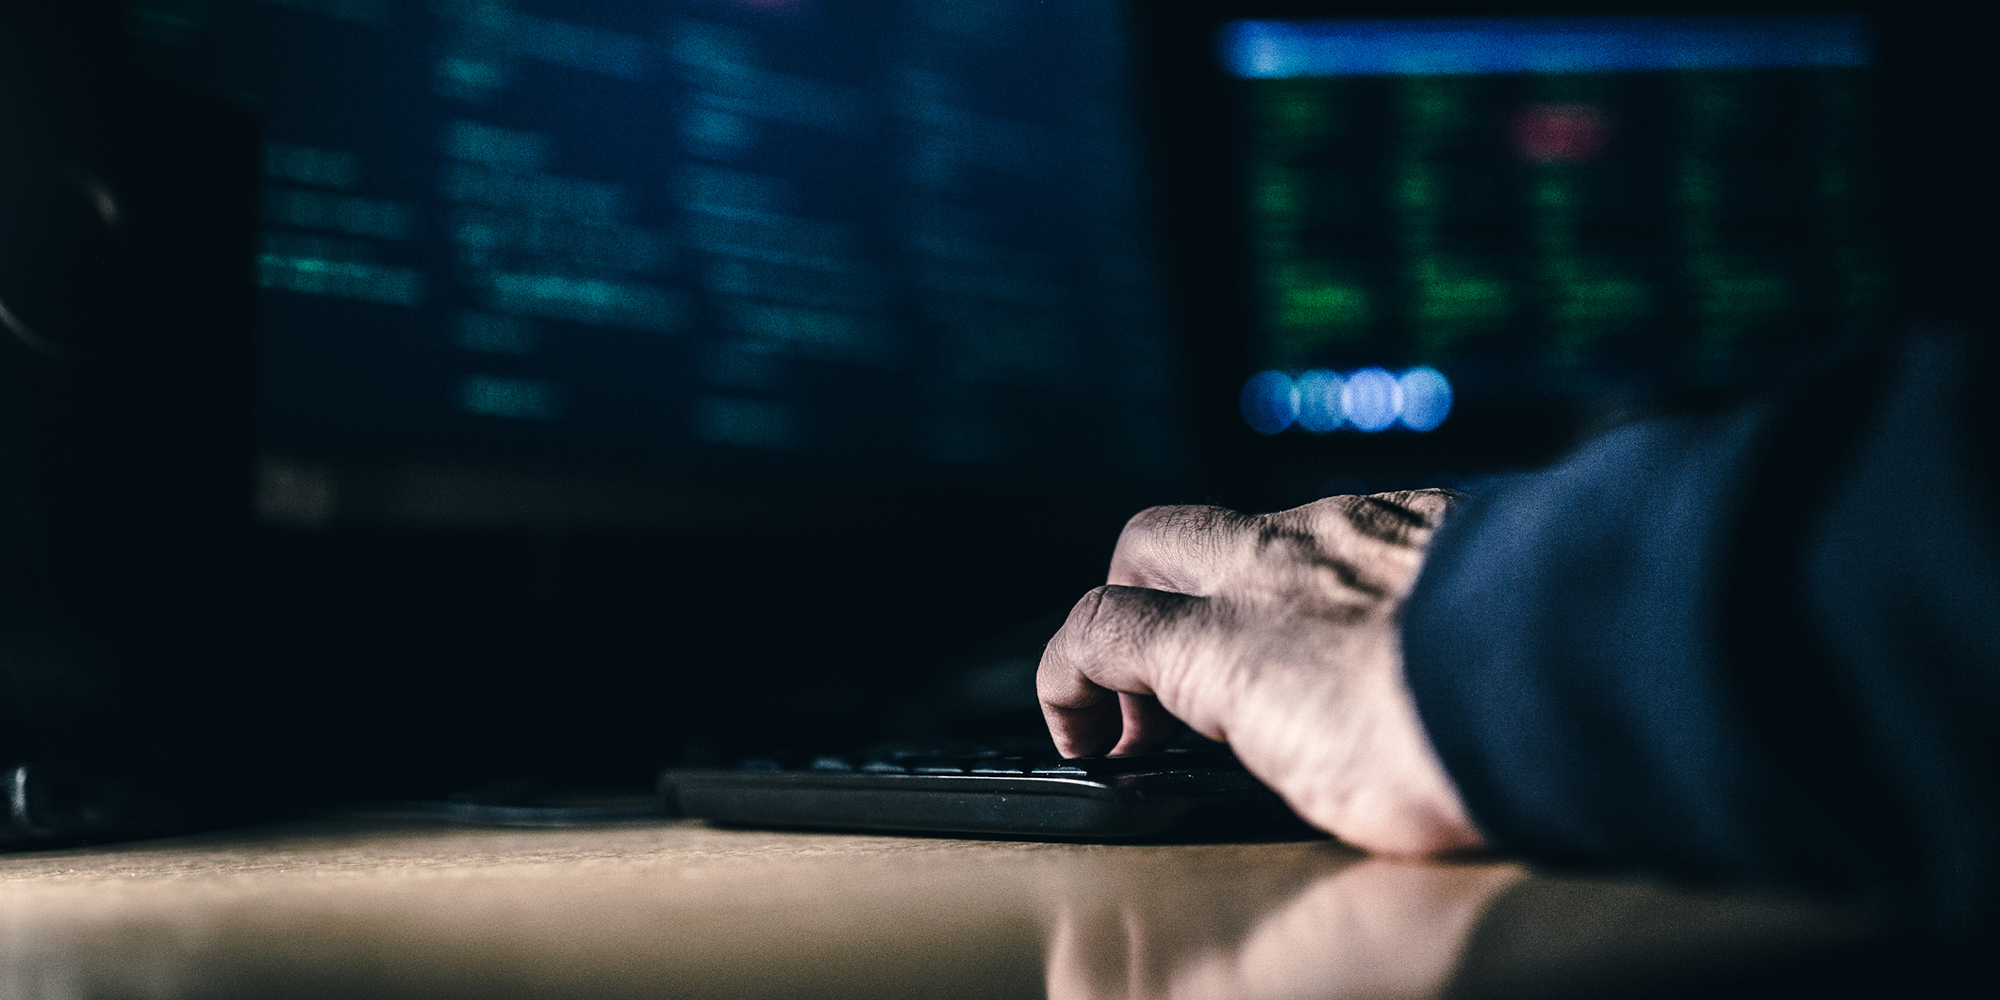 Cyberattacks are surging in lockstep with the spread of COVID-19